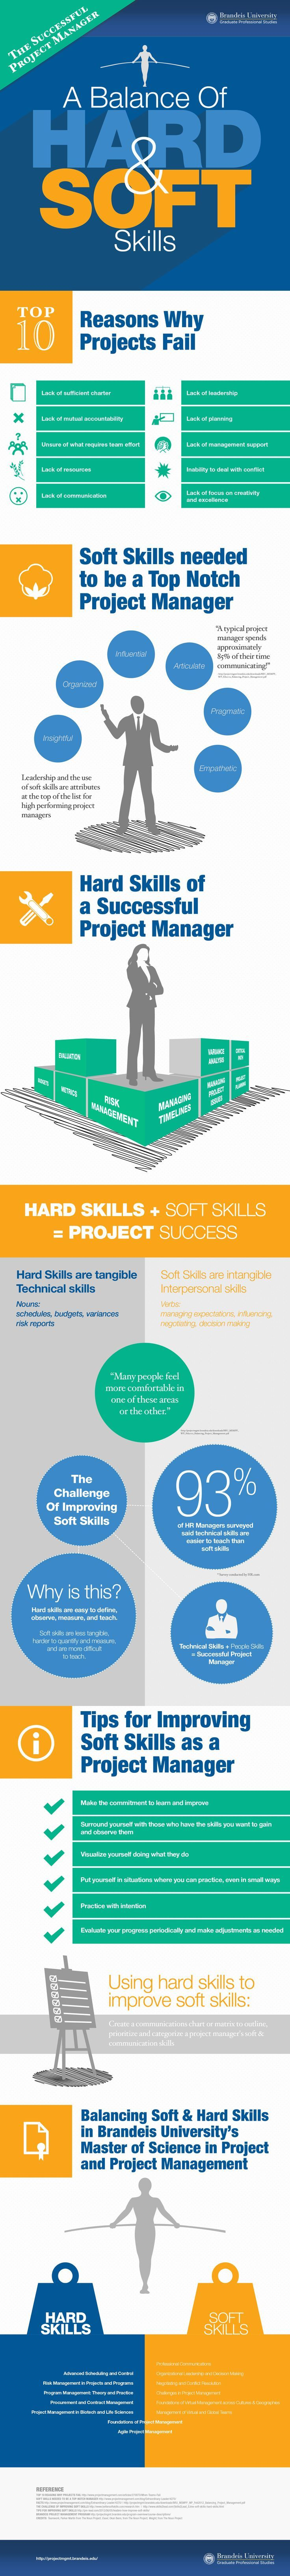 The Successful Project Manager A Balance of Hard